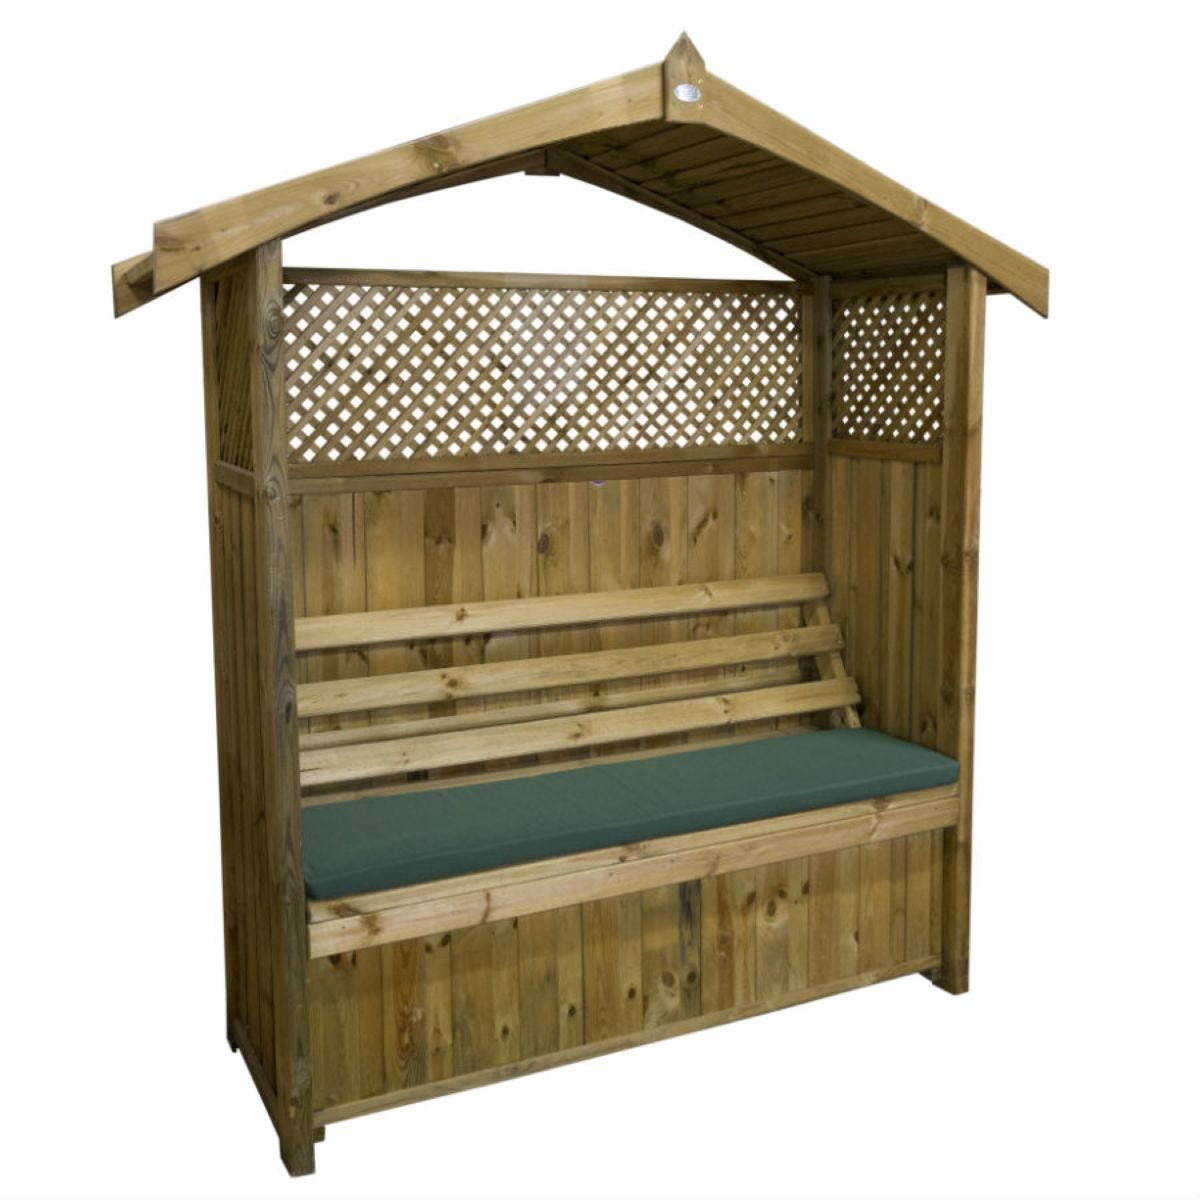 Zest4Leisure Hampshire Wooden Arbour with Storage Box & Green Seat Cushion